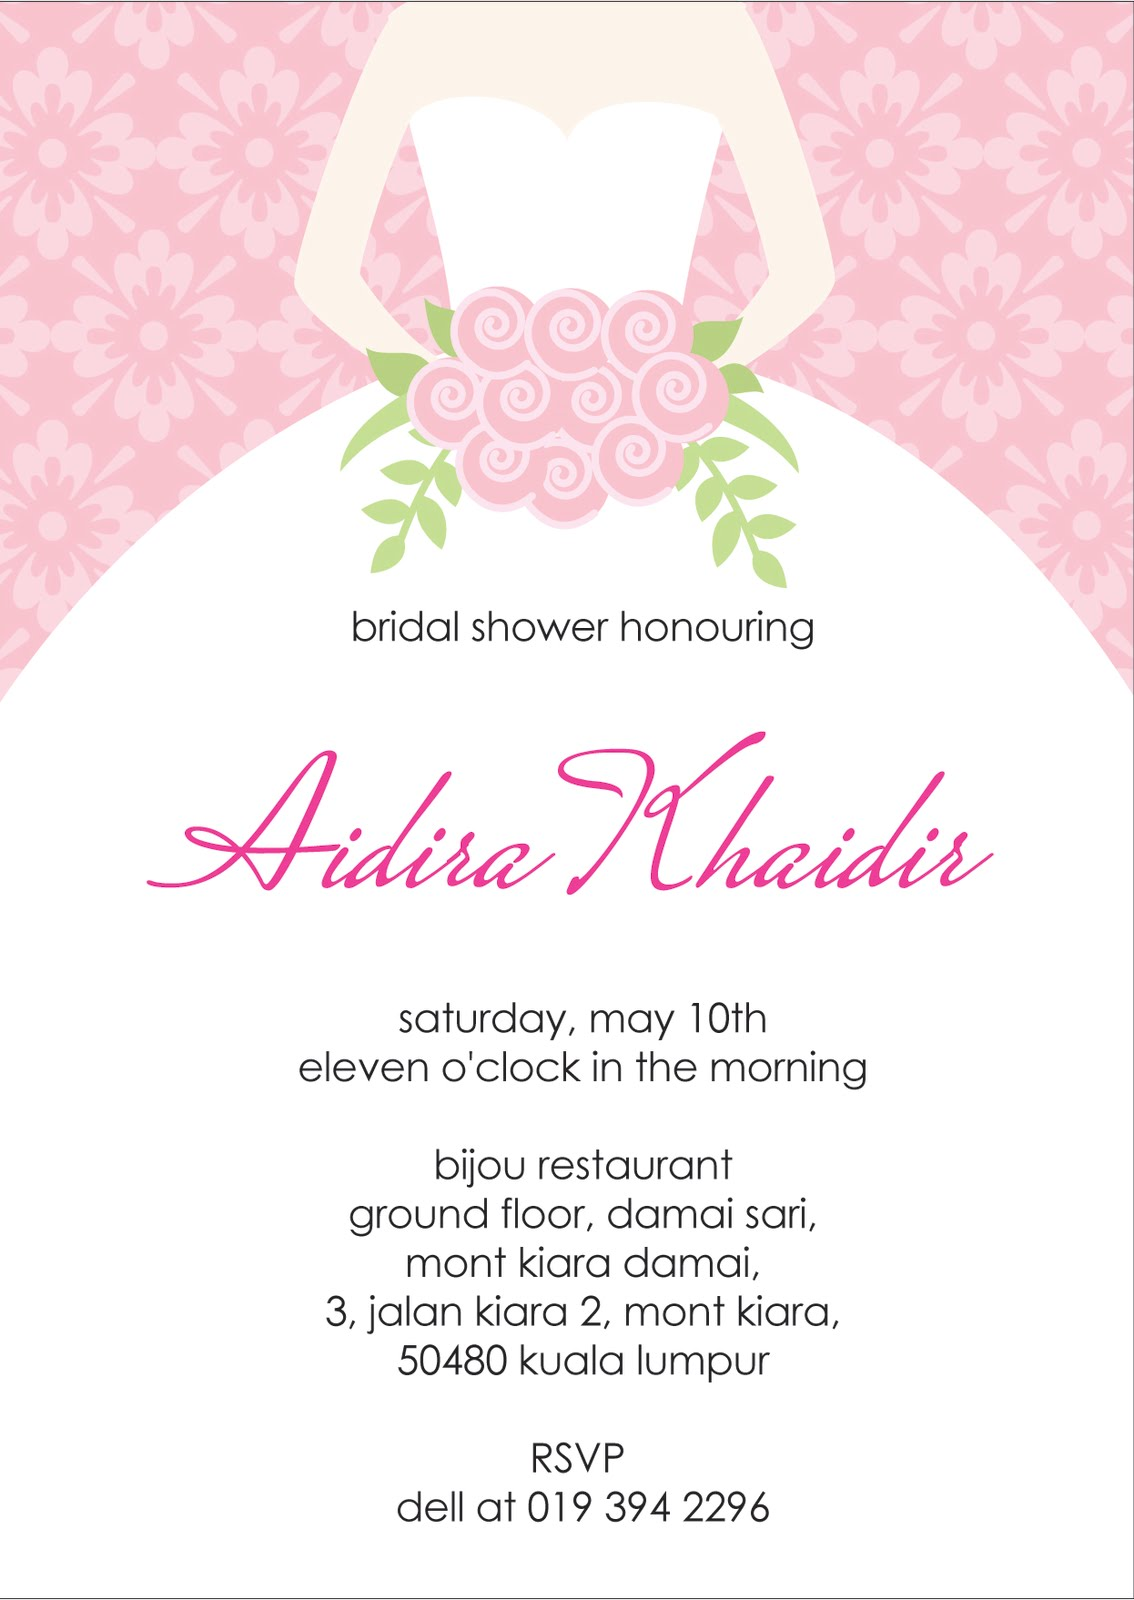 Fan image in printable bridal shower invitations